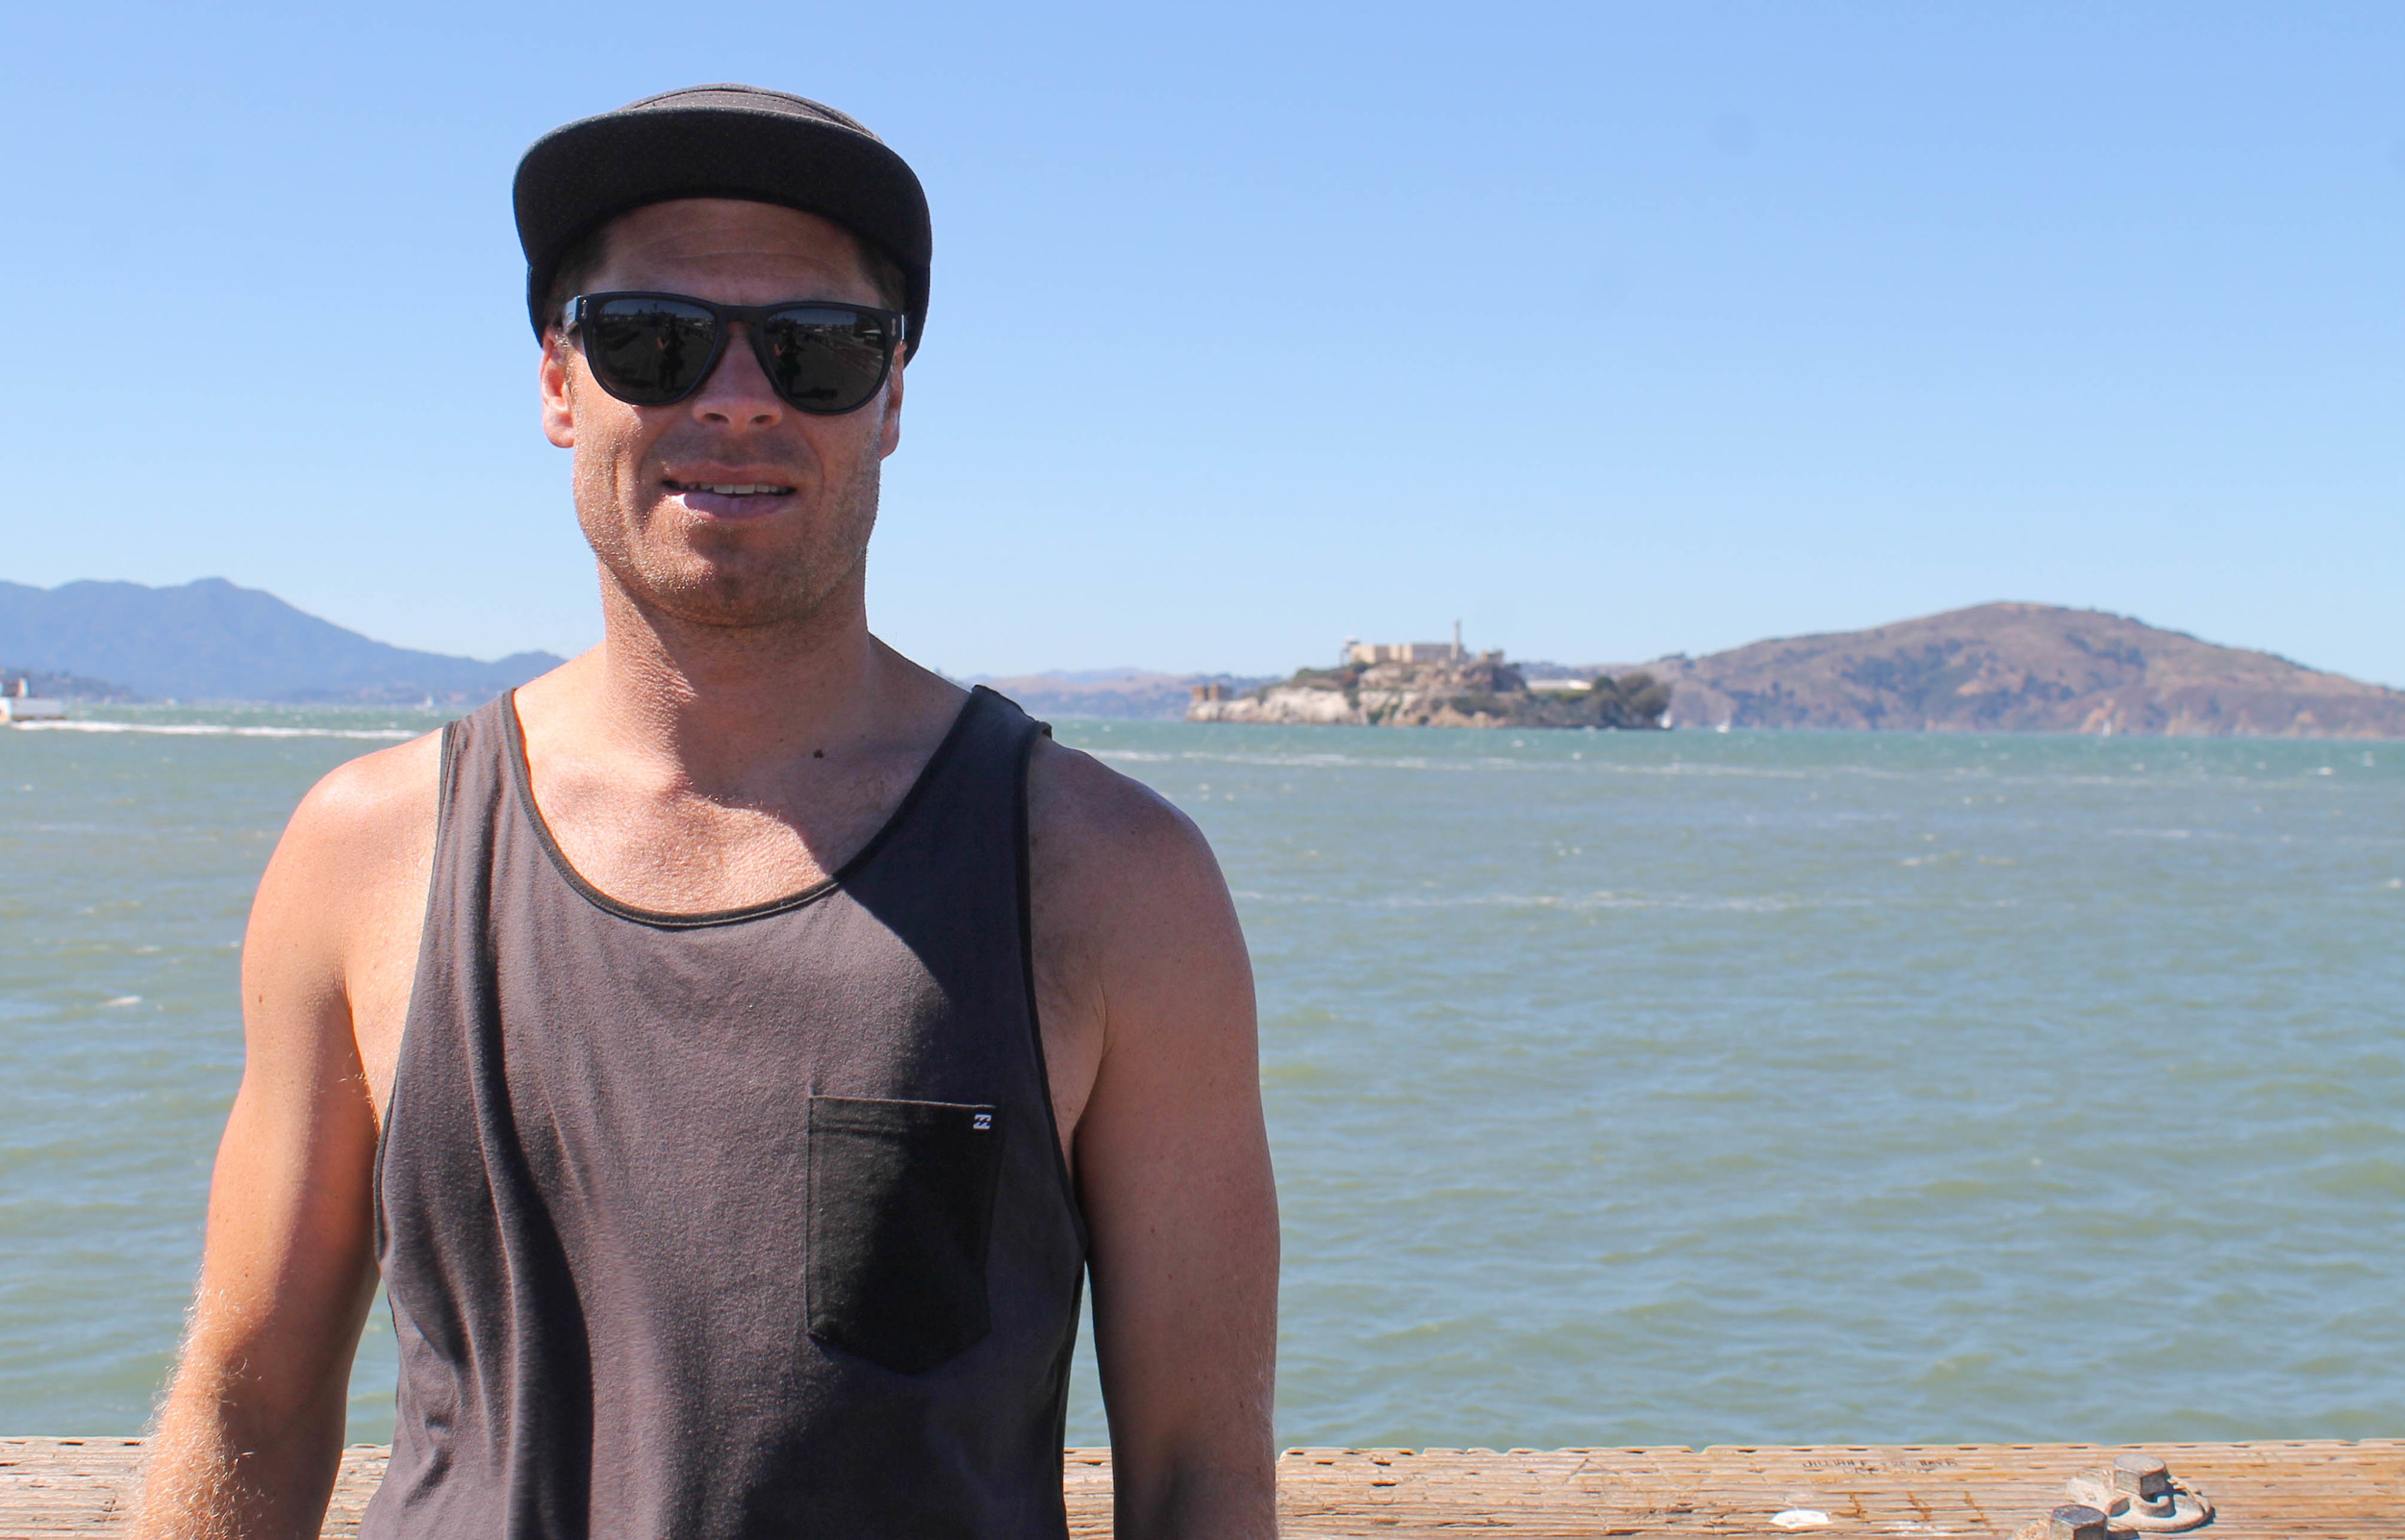 In front of a blurry Alcatraz.